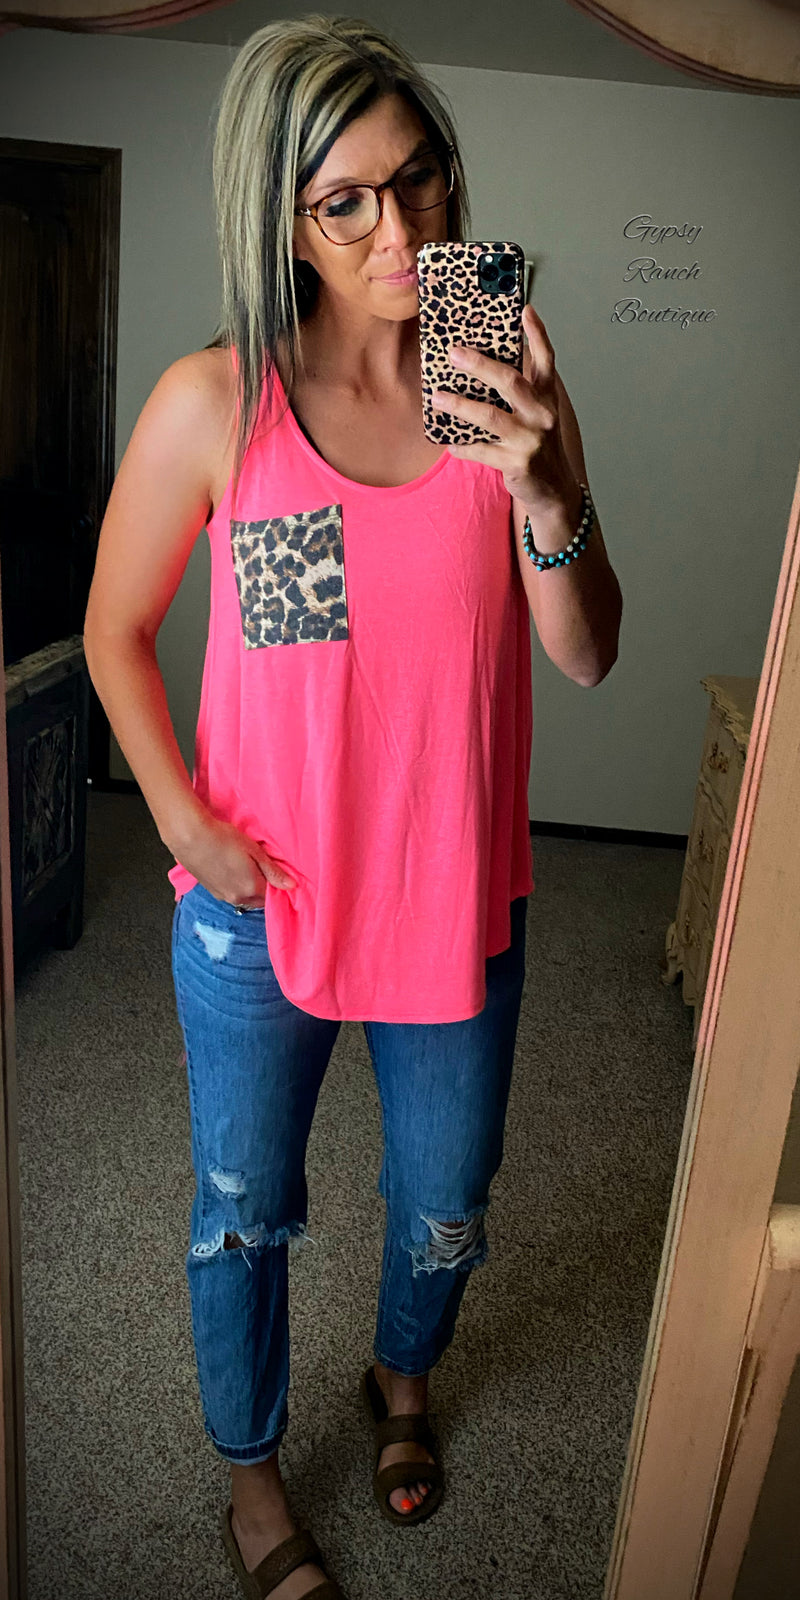 Cicily Neon Pink Leopard Pocket Tank Top - Also in Plus Size